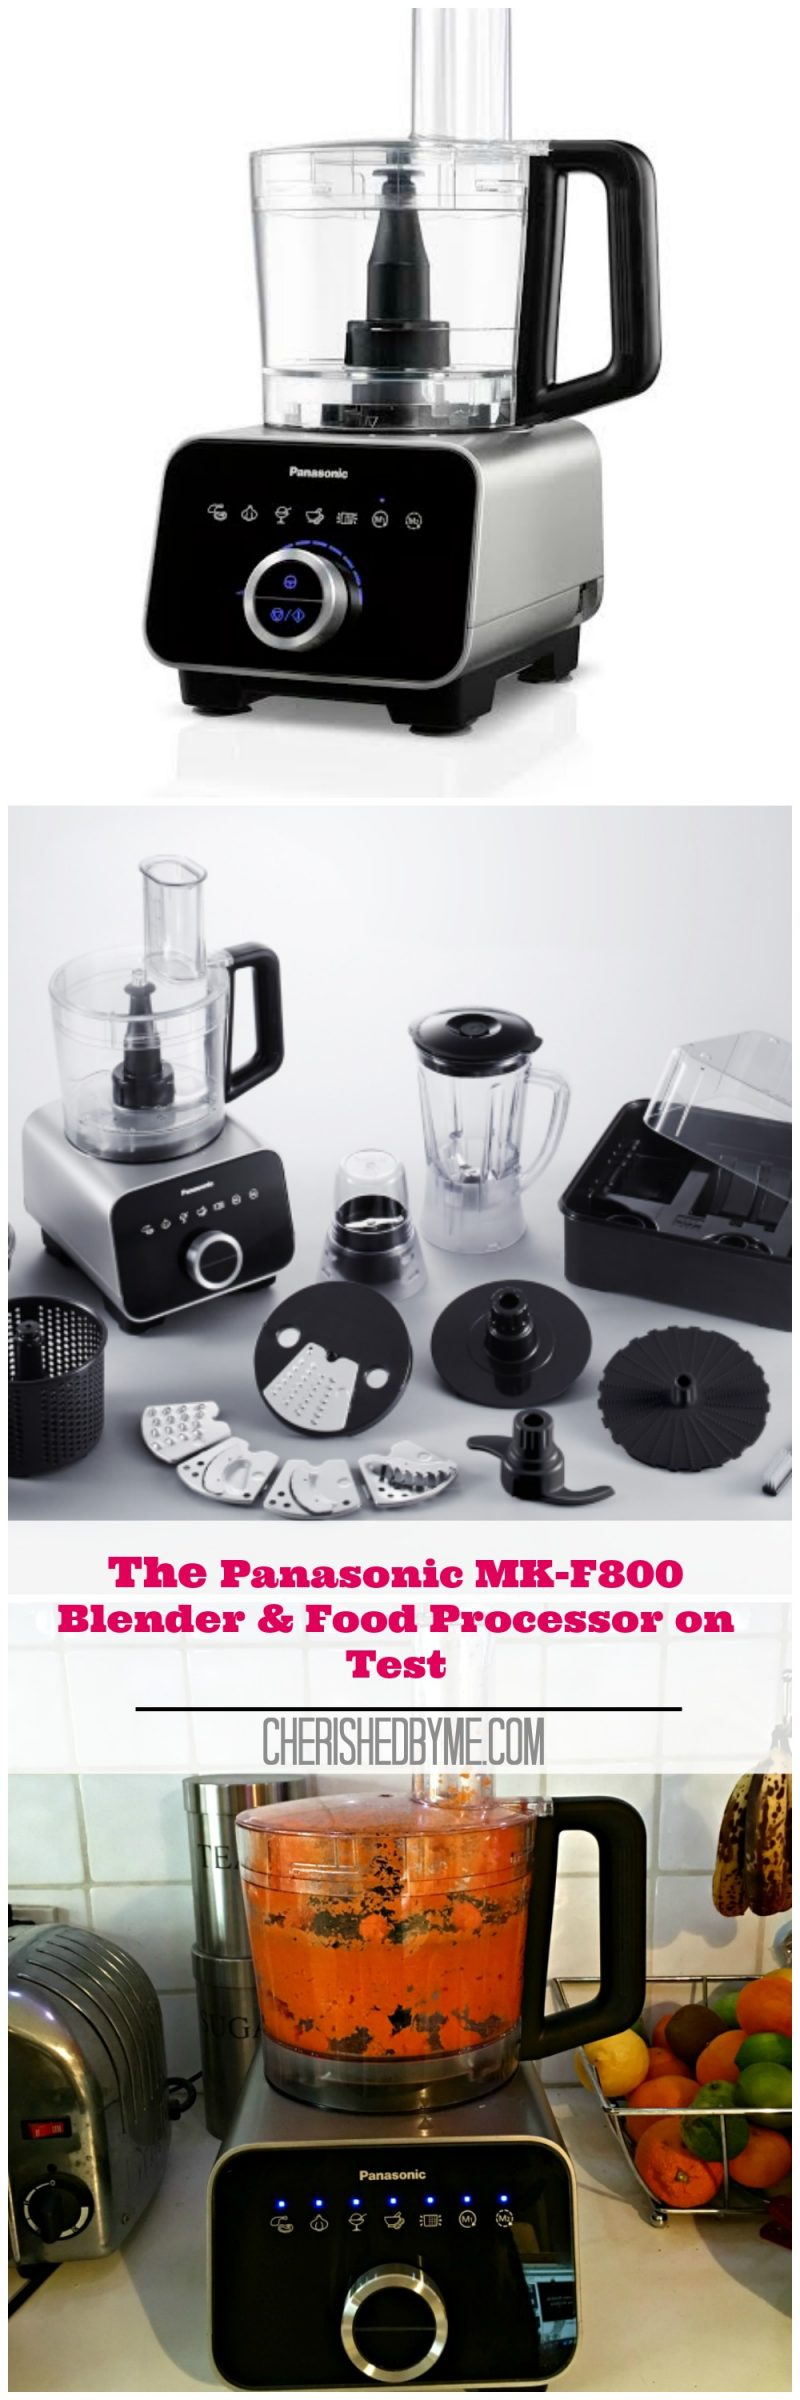 Panasonic MK-F800 Blender & Food Processor